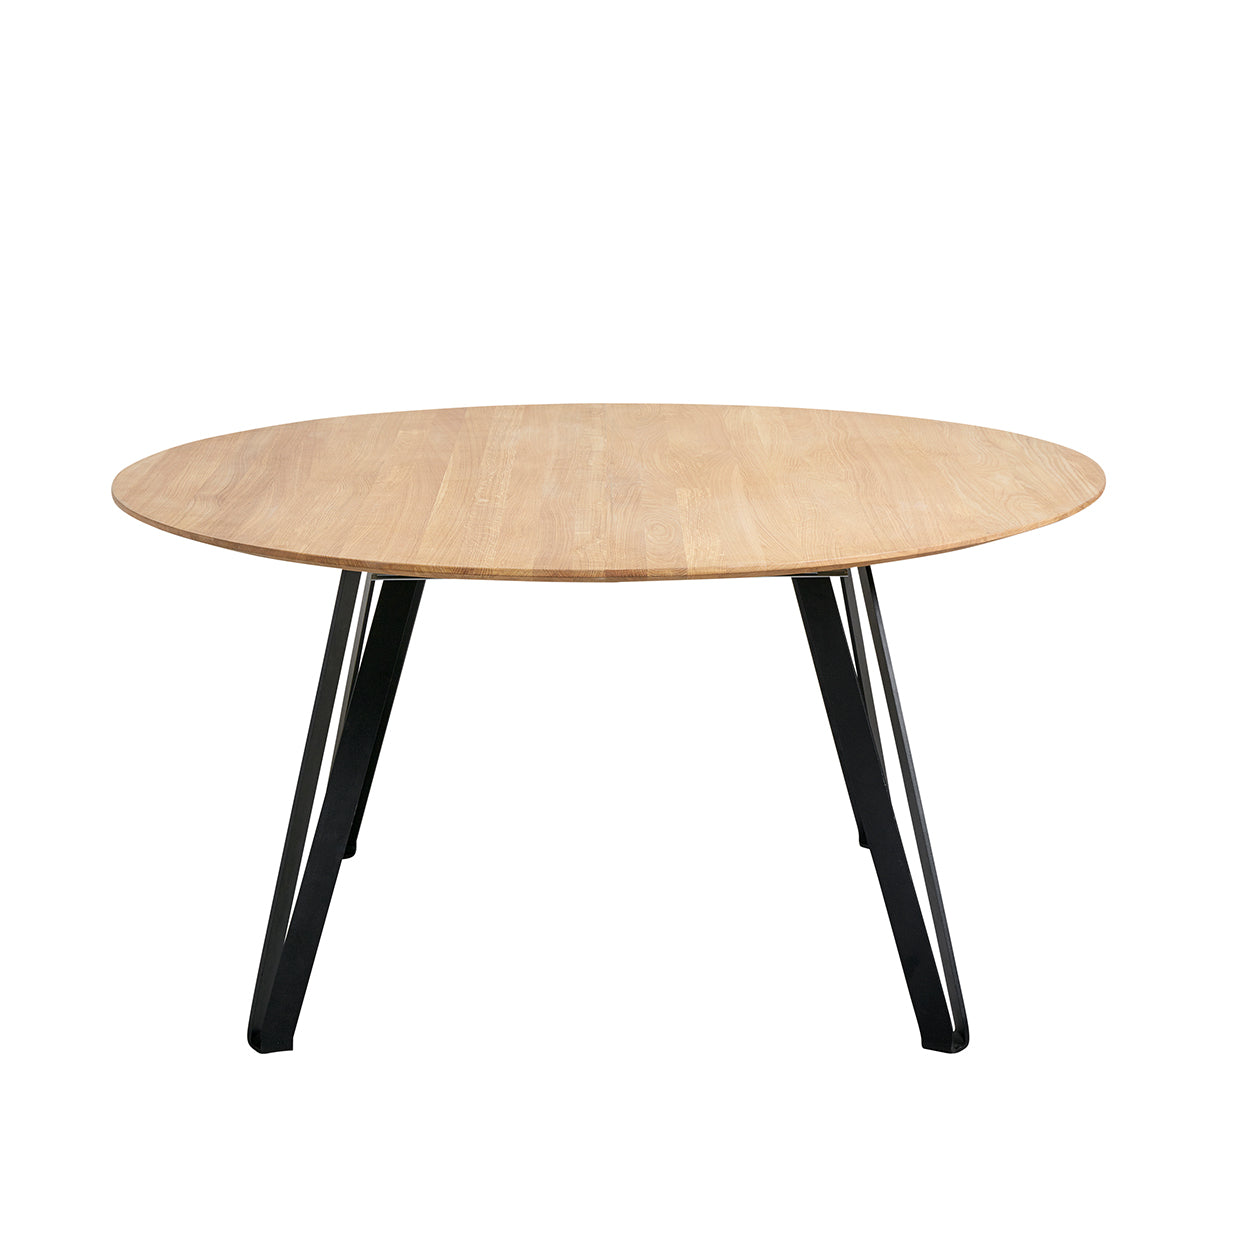 Muubs Spisebord Space Natural Round, Ø120cm